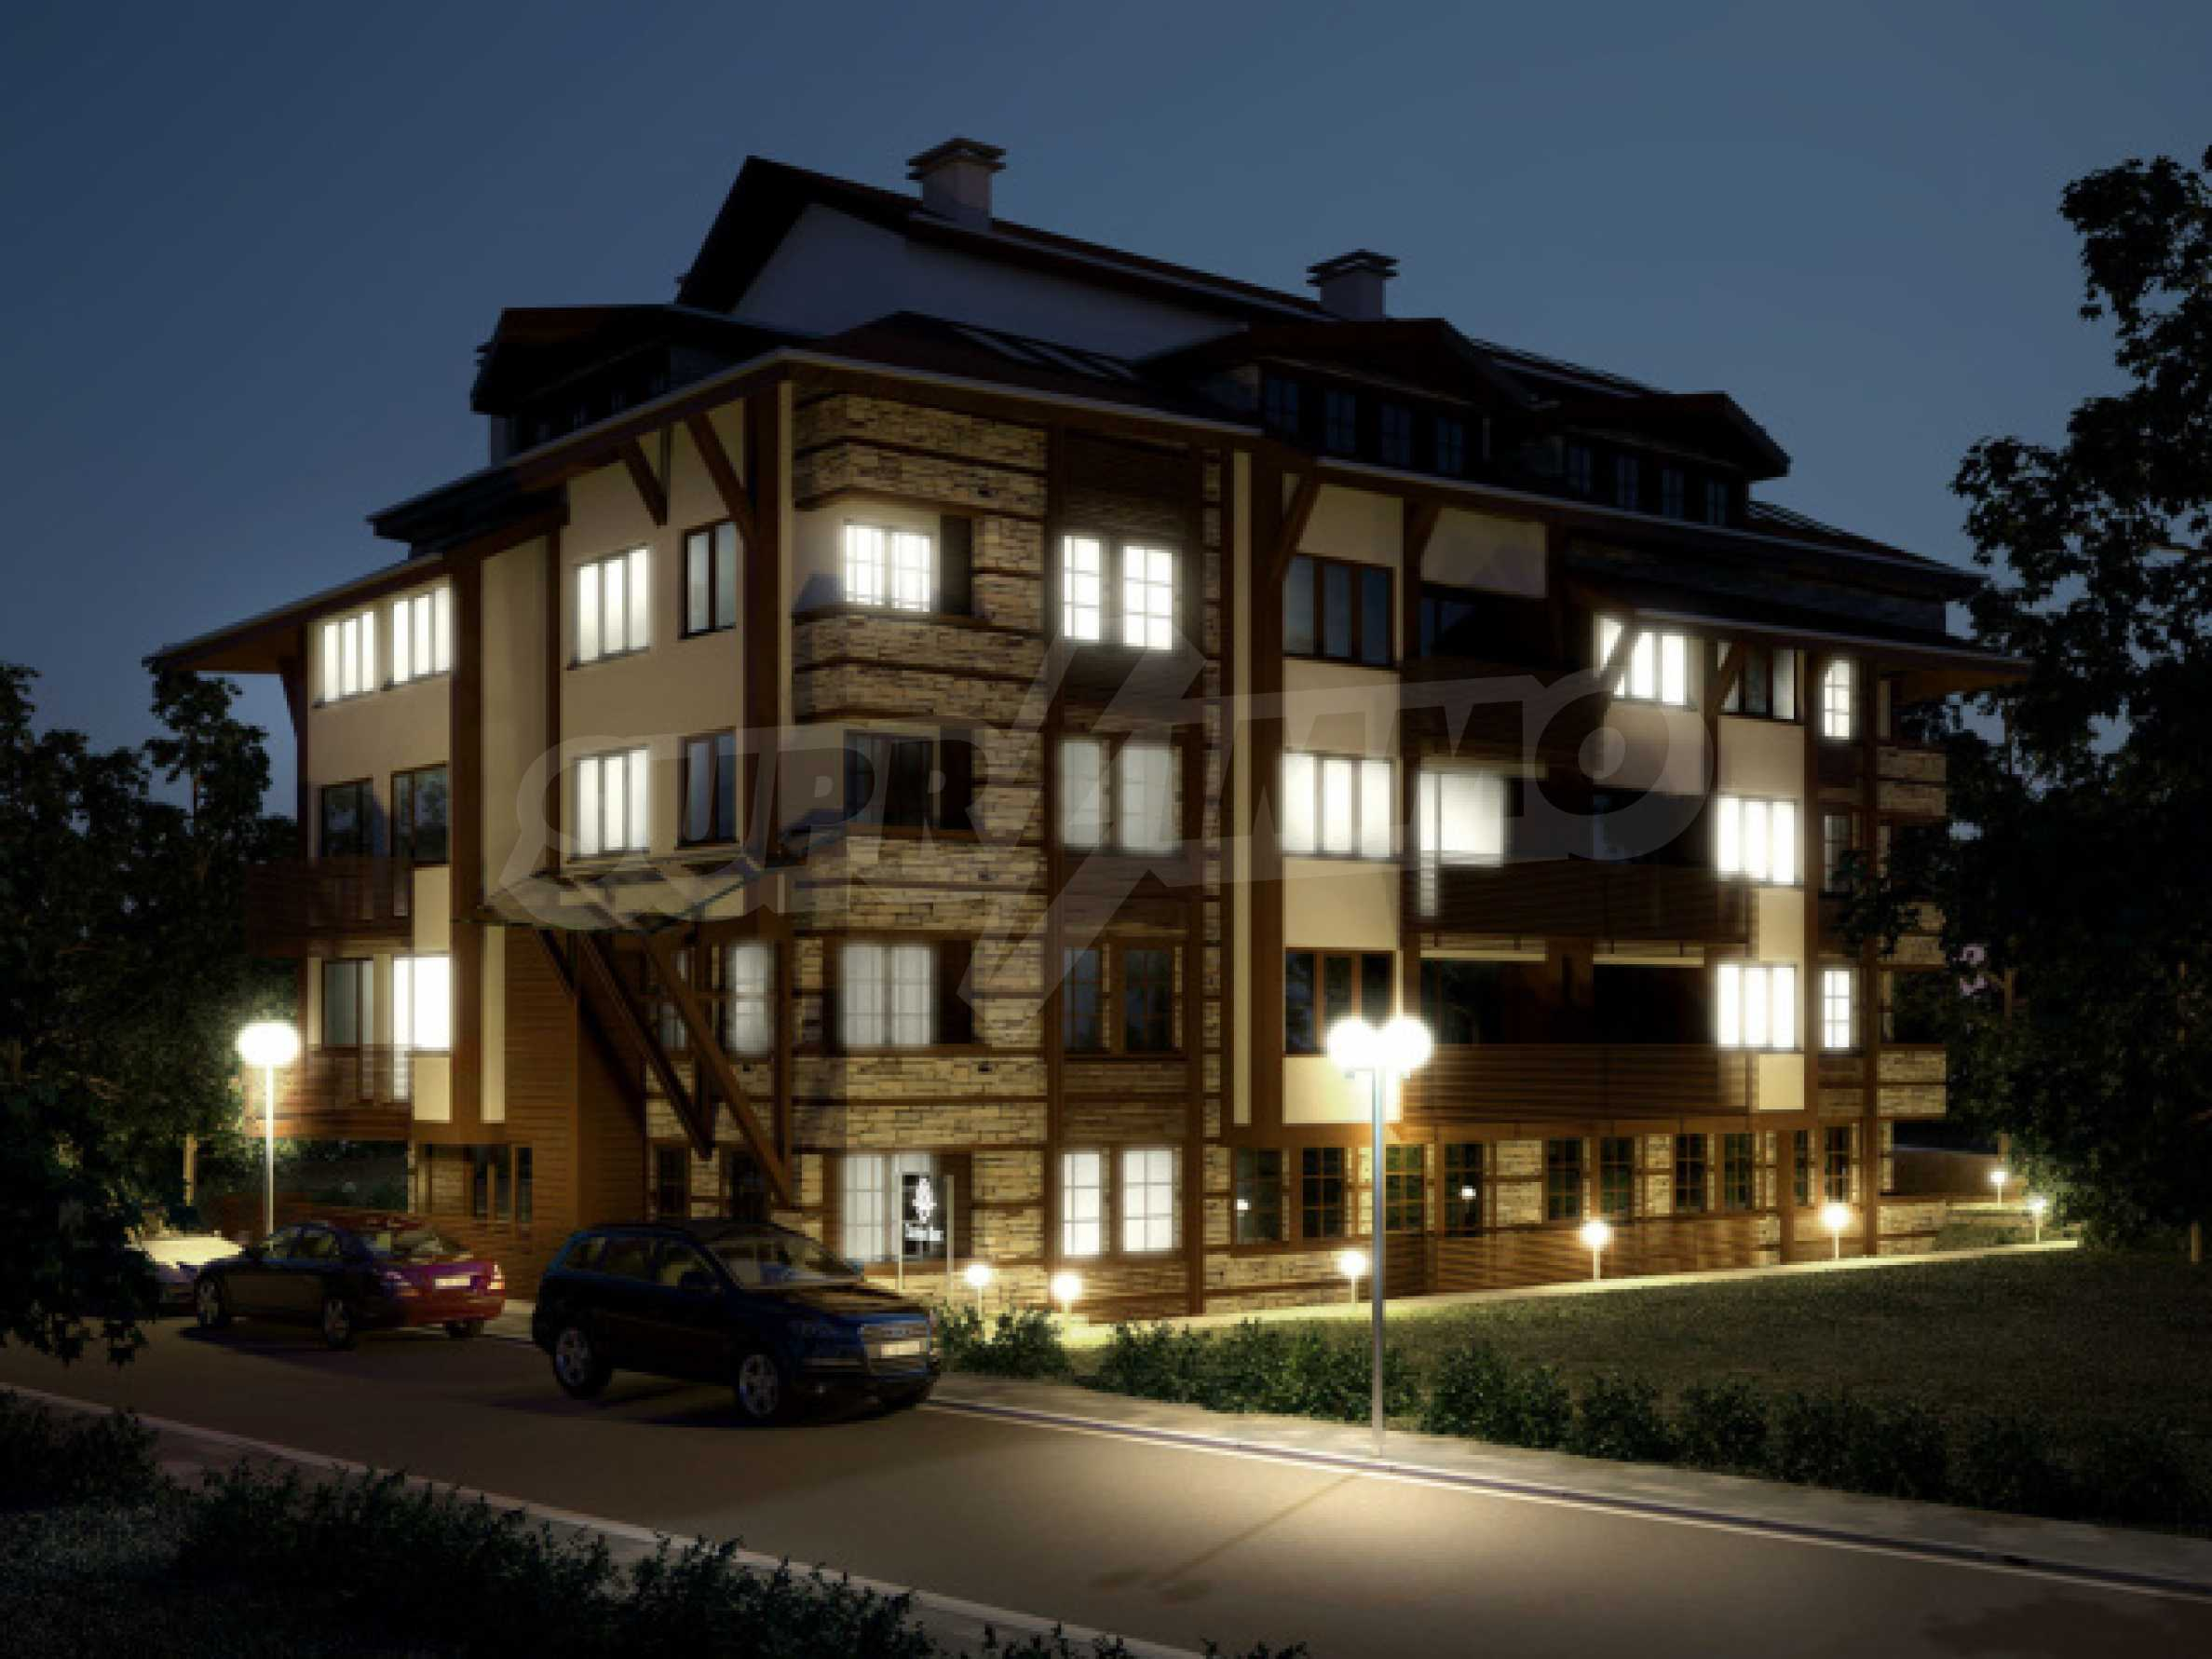 Chateau Blanc: Probably the best investment opportunity in Bansko... 4